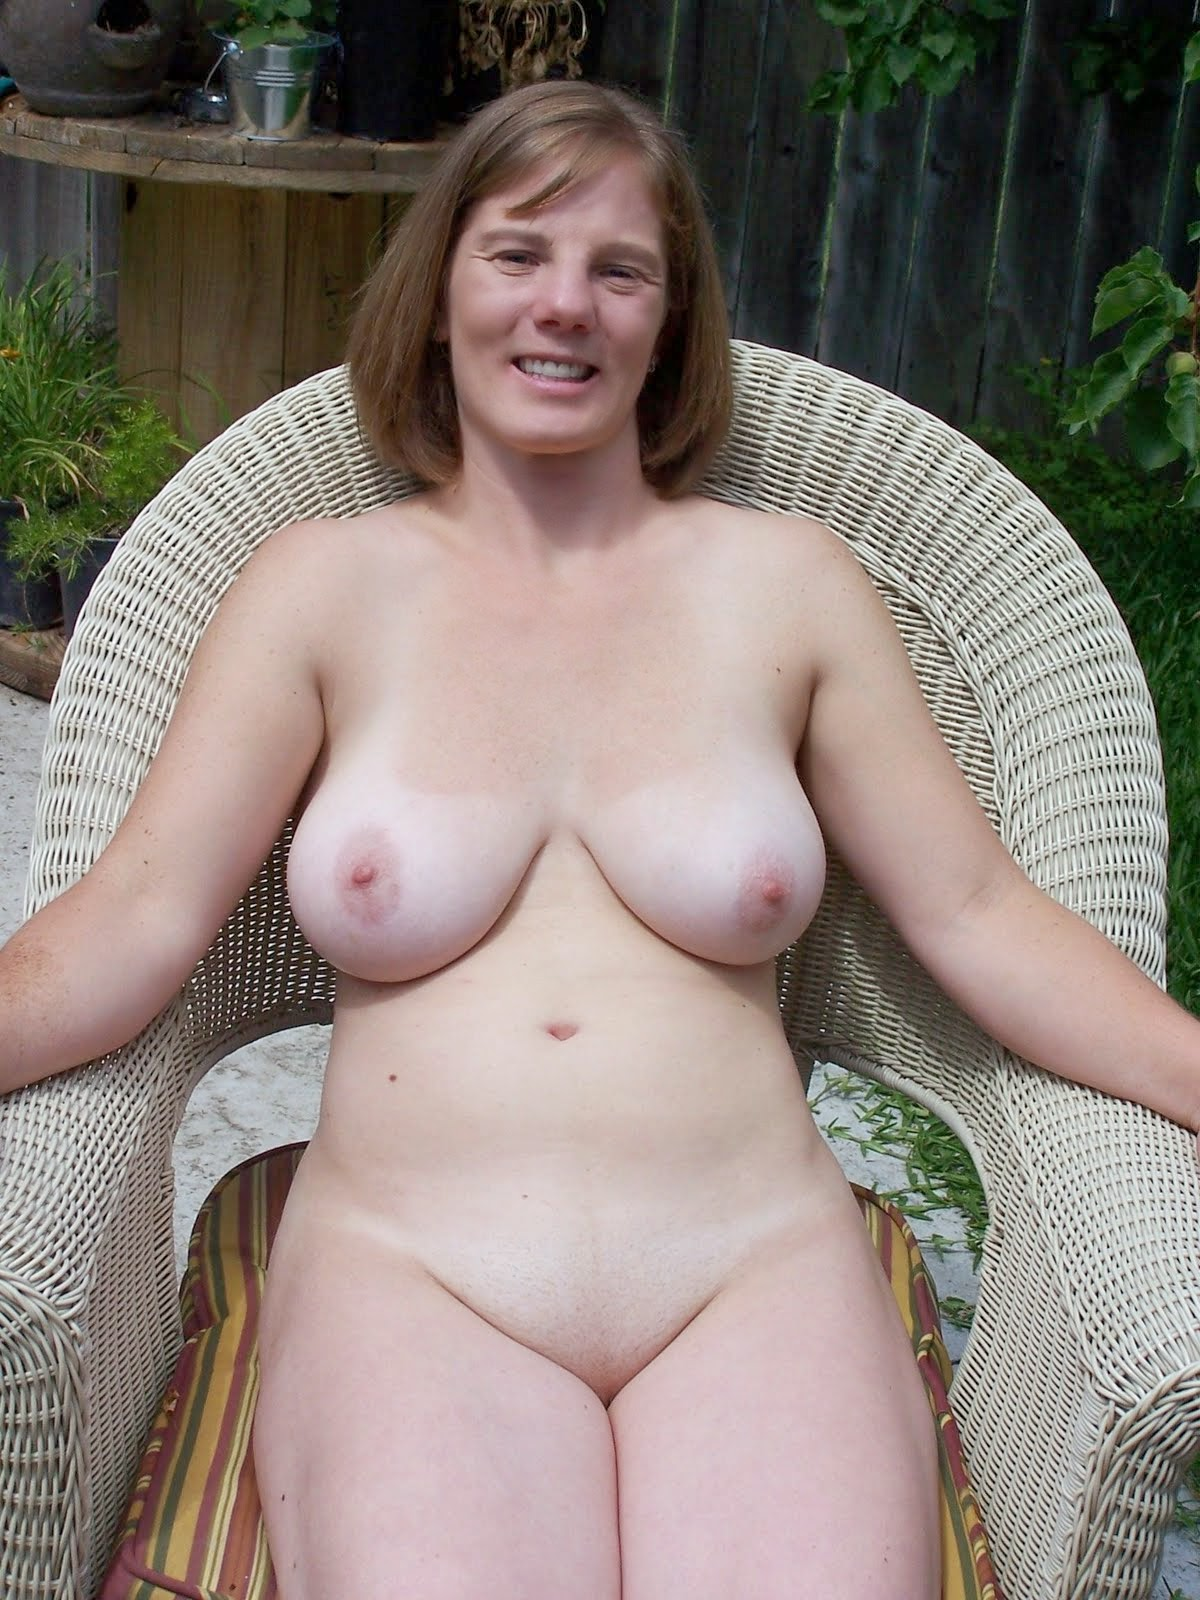 Nude middle aged women simply